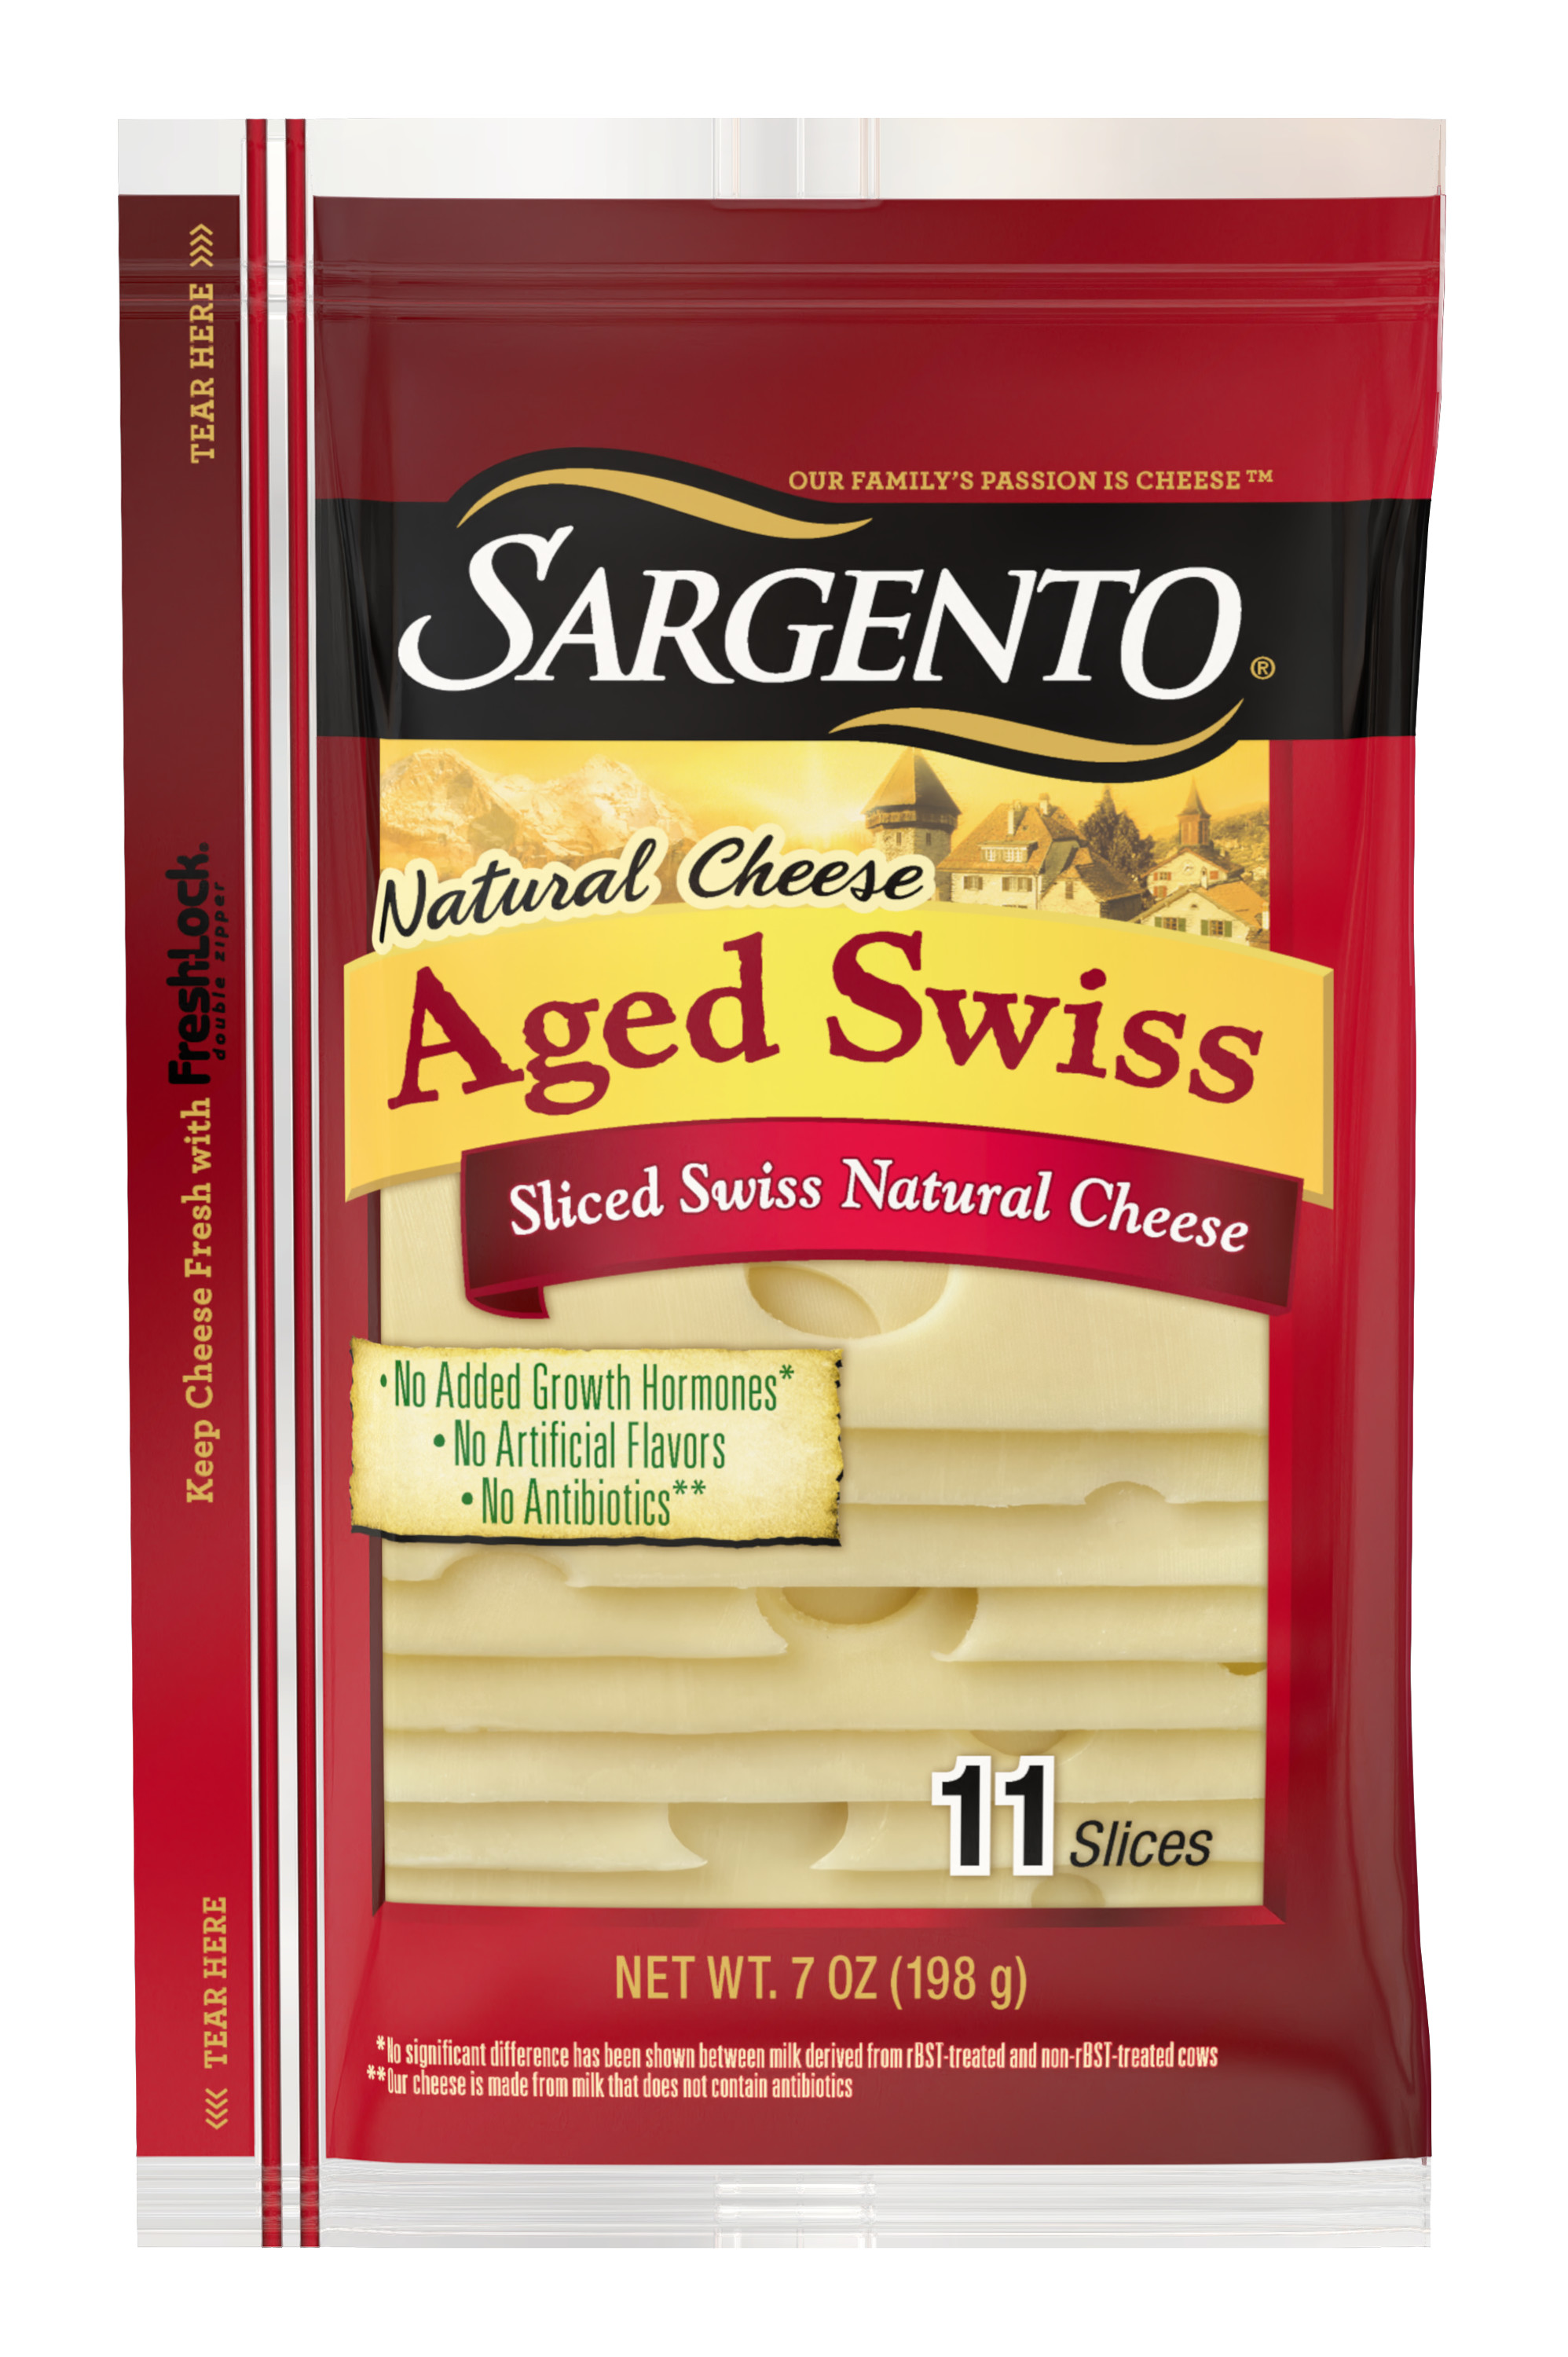 Sargento® Sliced Aged Swiss Natural Cheese, 11 slices